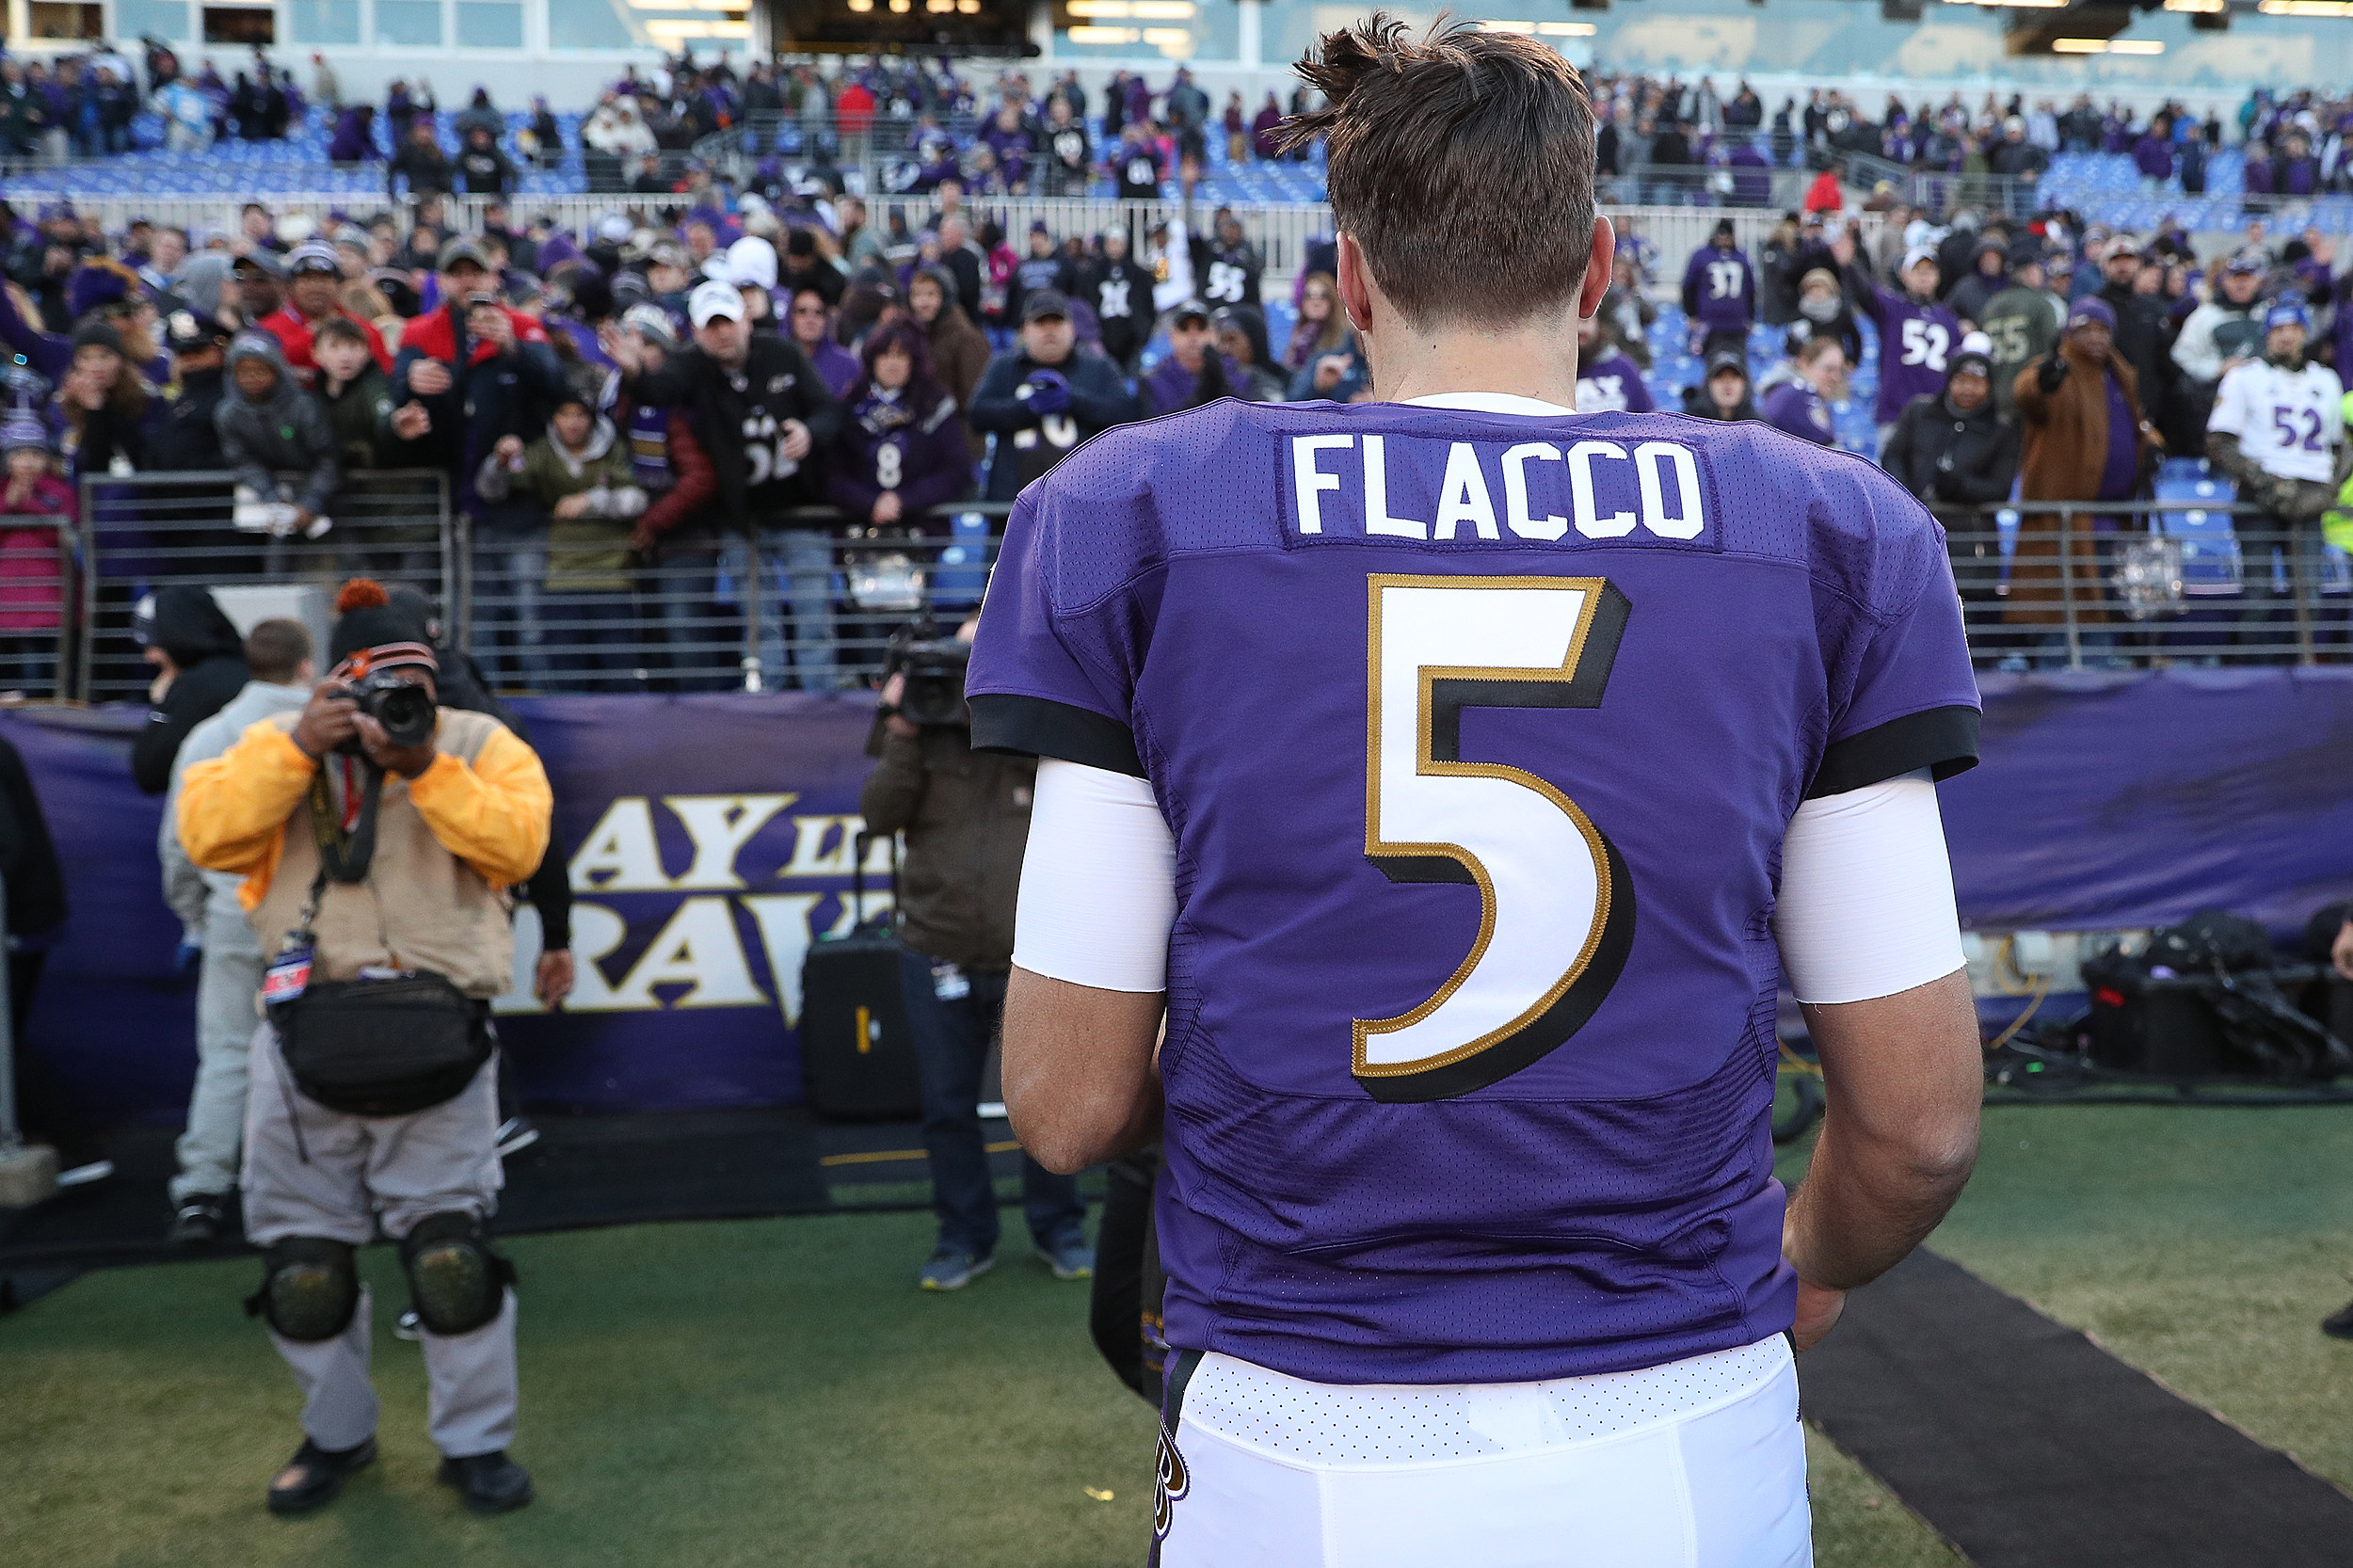 5a594ba8aa0 Jersey Joe Flacco to the Broncos, mean anything for the Giants?